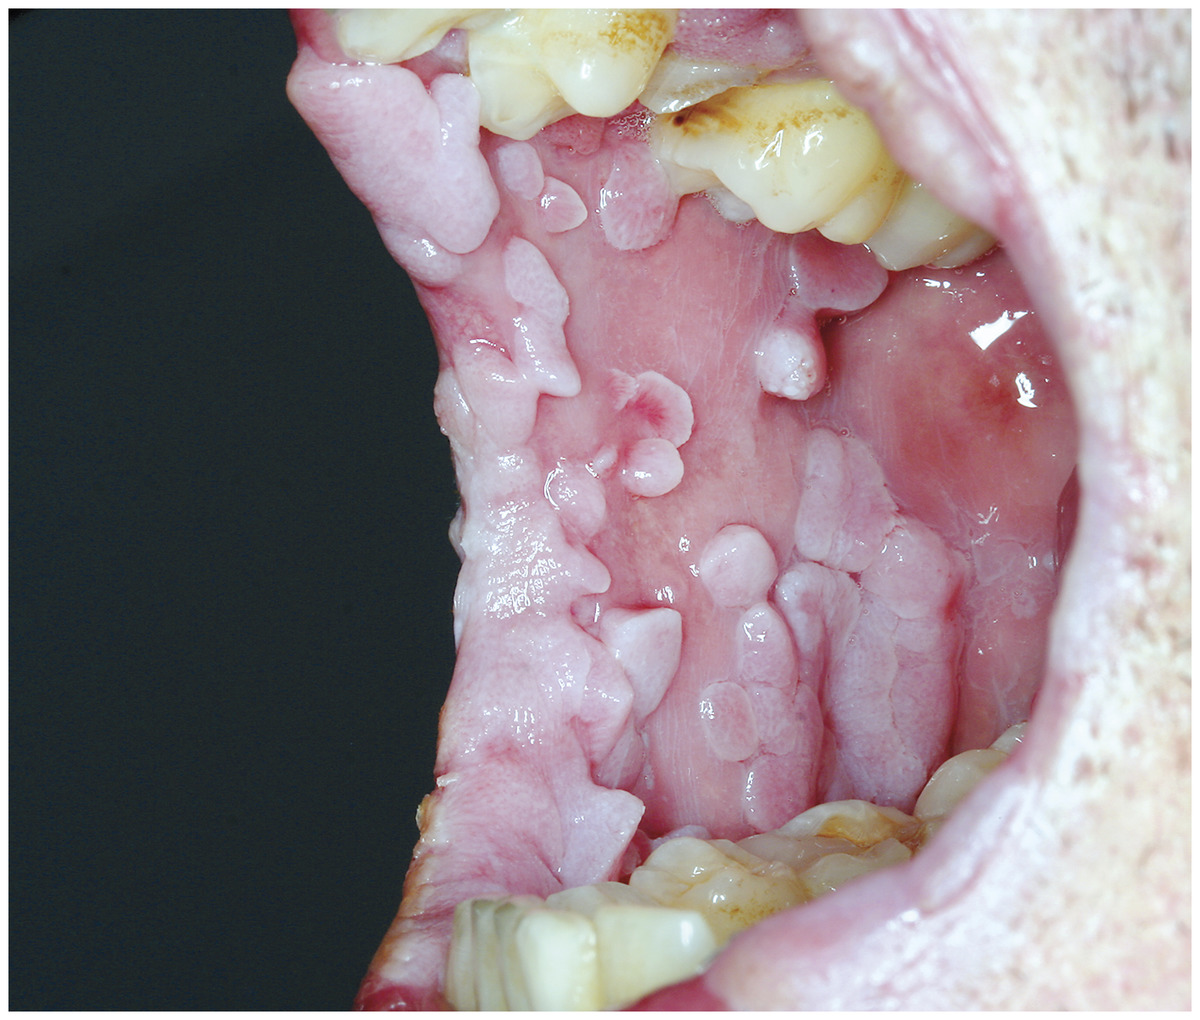 hpv virus tongue papiloma y herpes labial